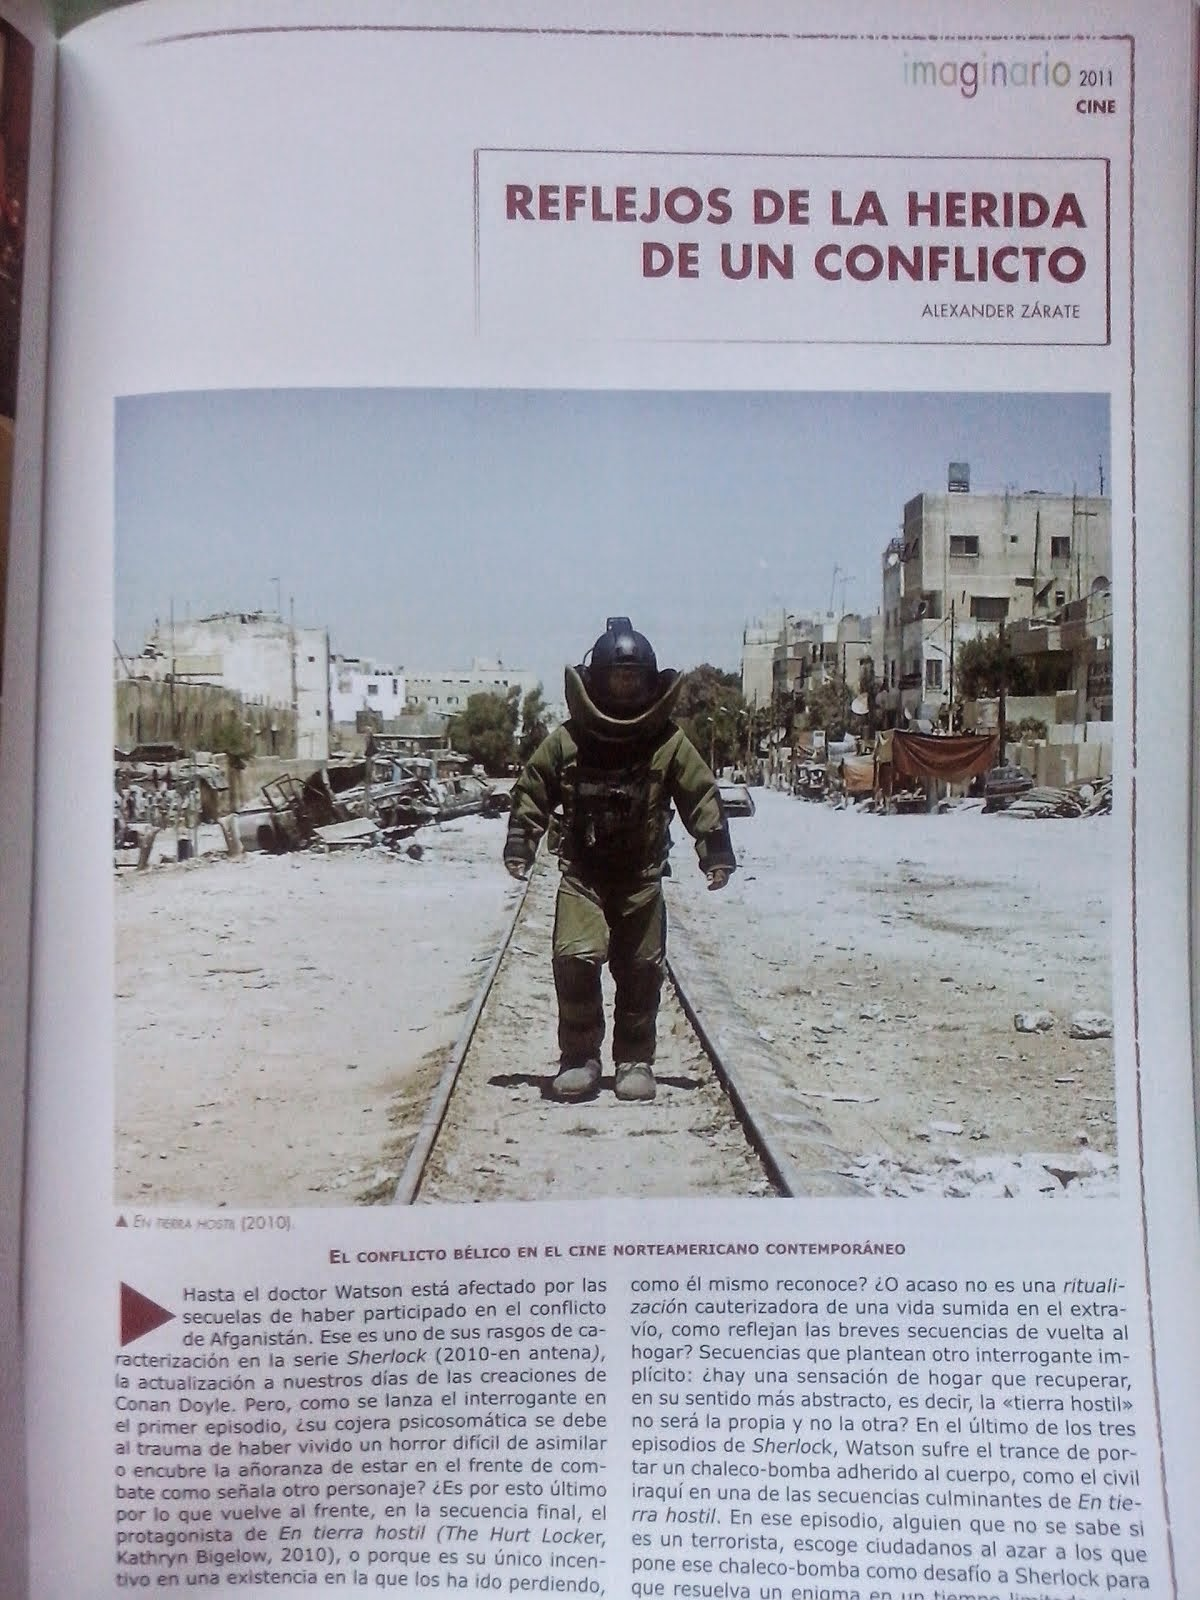 Revista Imaginario 2011